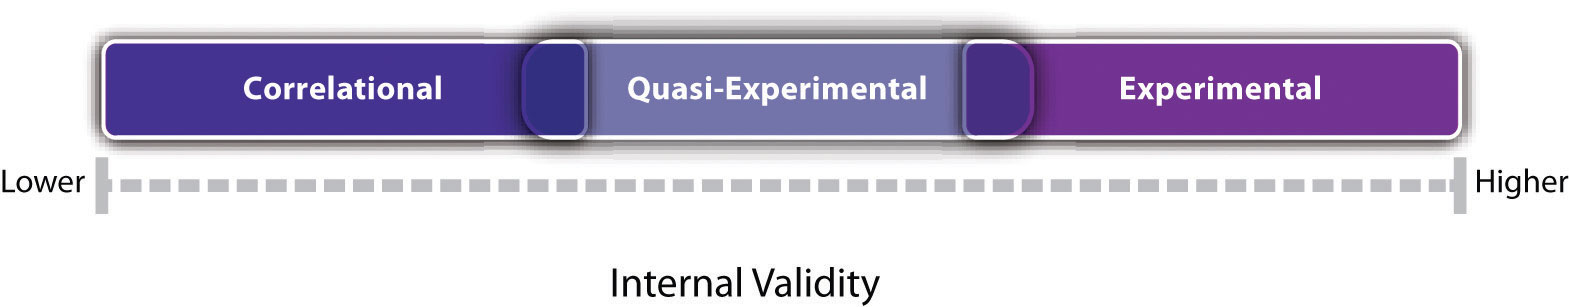 Experiments are generally high in internal validity, quasi-experiments lower, and correlational studies lower still